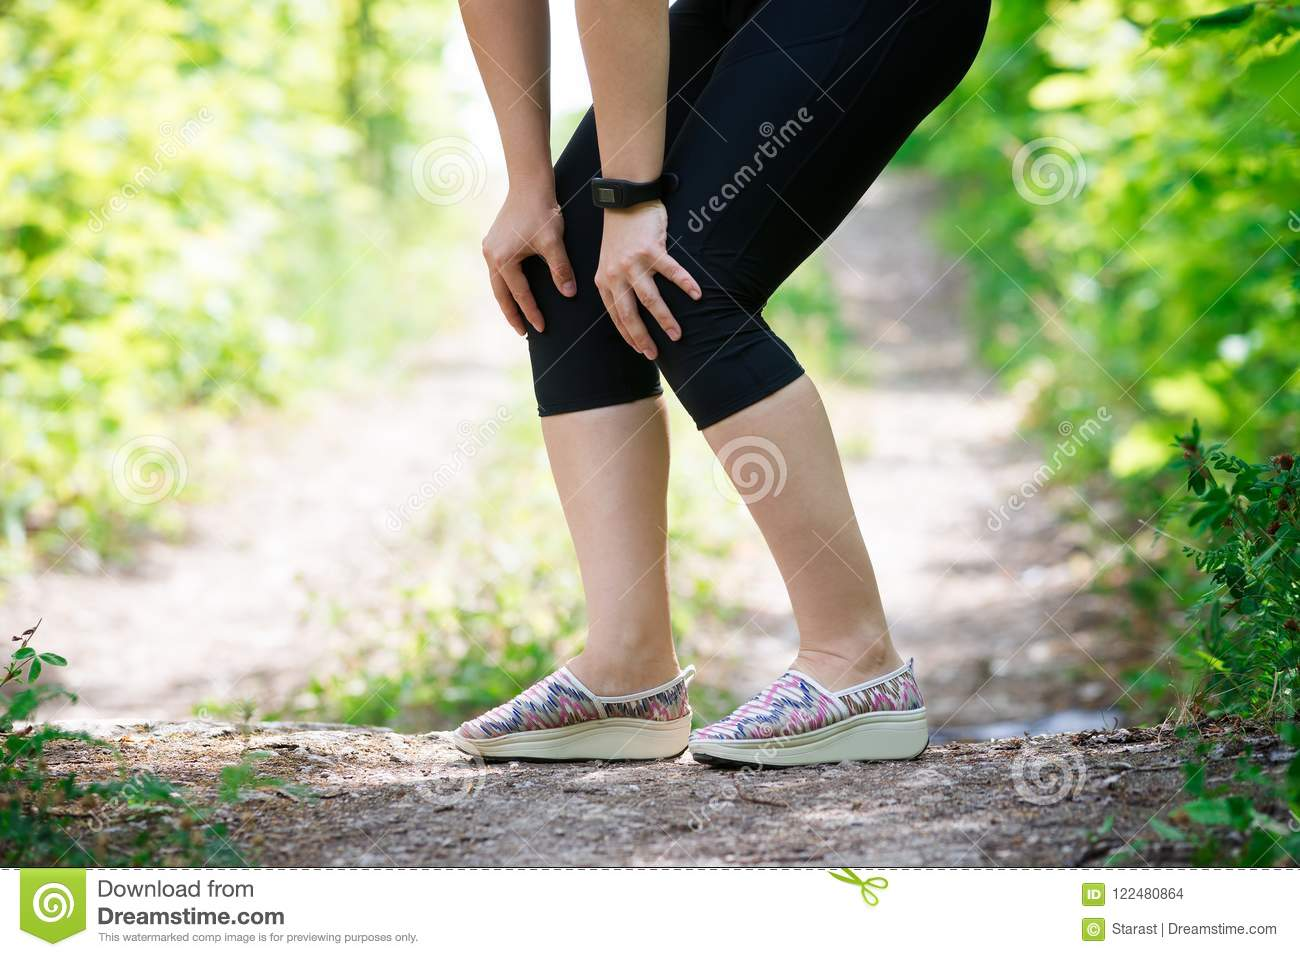 Pain in woman`s knee, massage of female leg, injury while running, trauma during workout